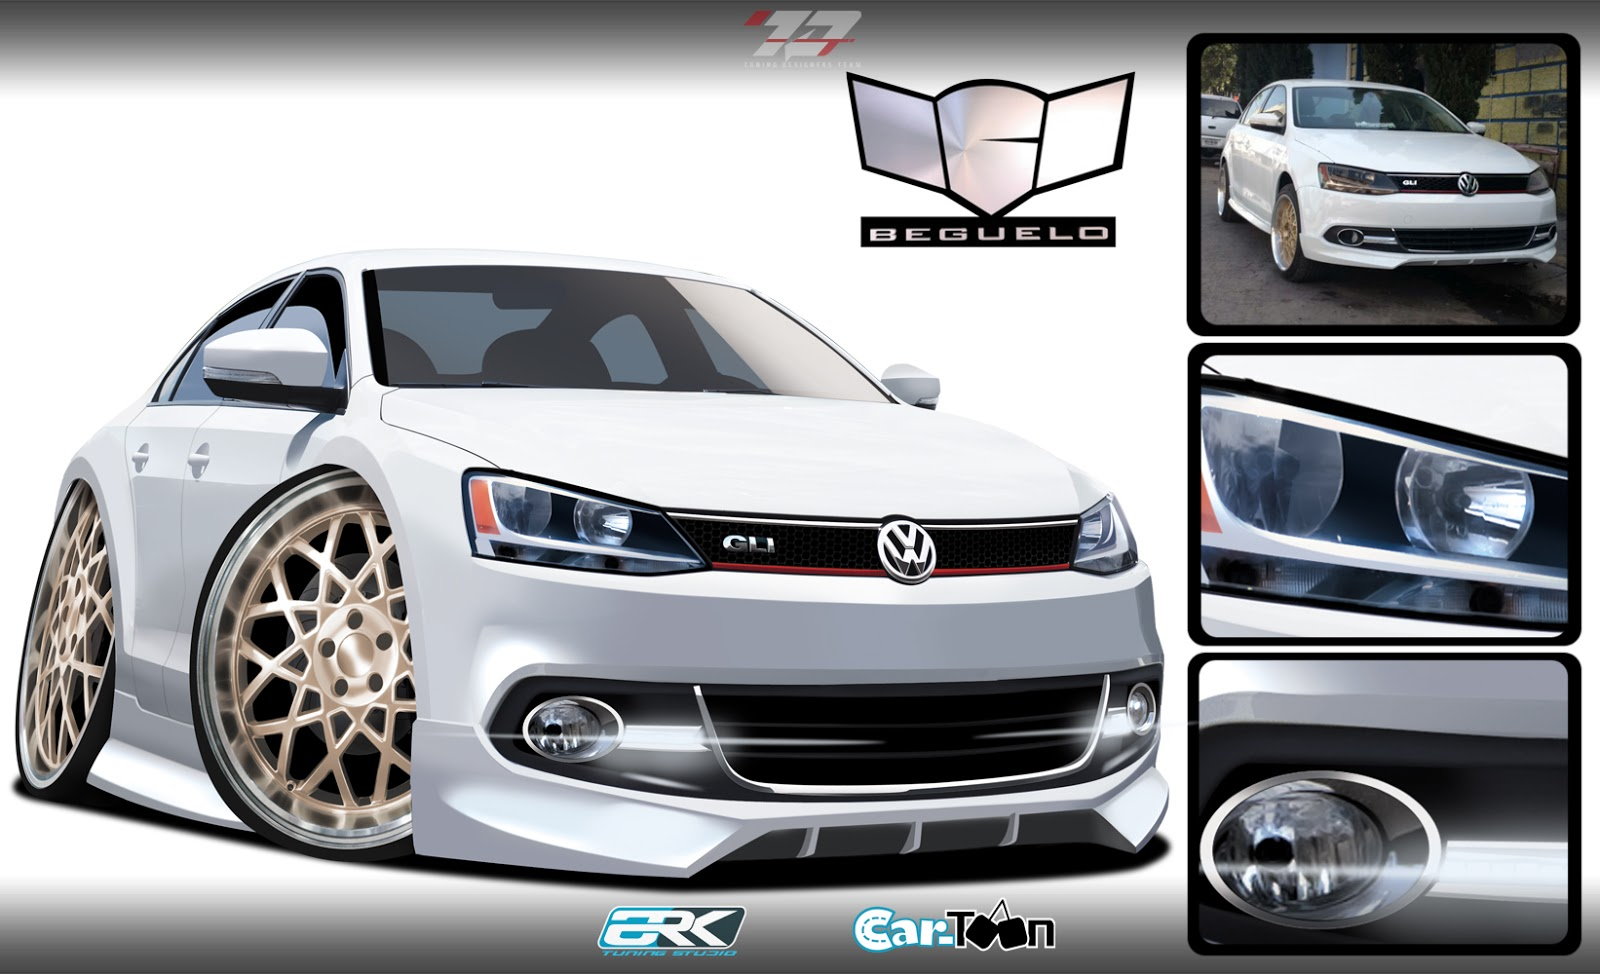 virtual tuning studio by ark llanes car toon vw jetta mk6. Black Bedroom Furniture Sets. Home Design Ideas